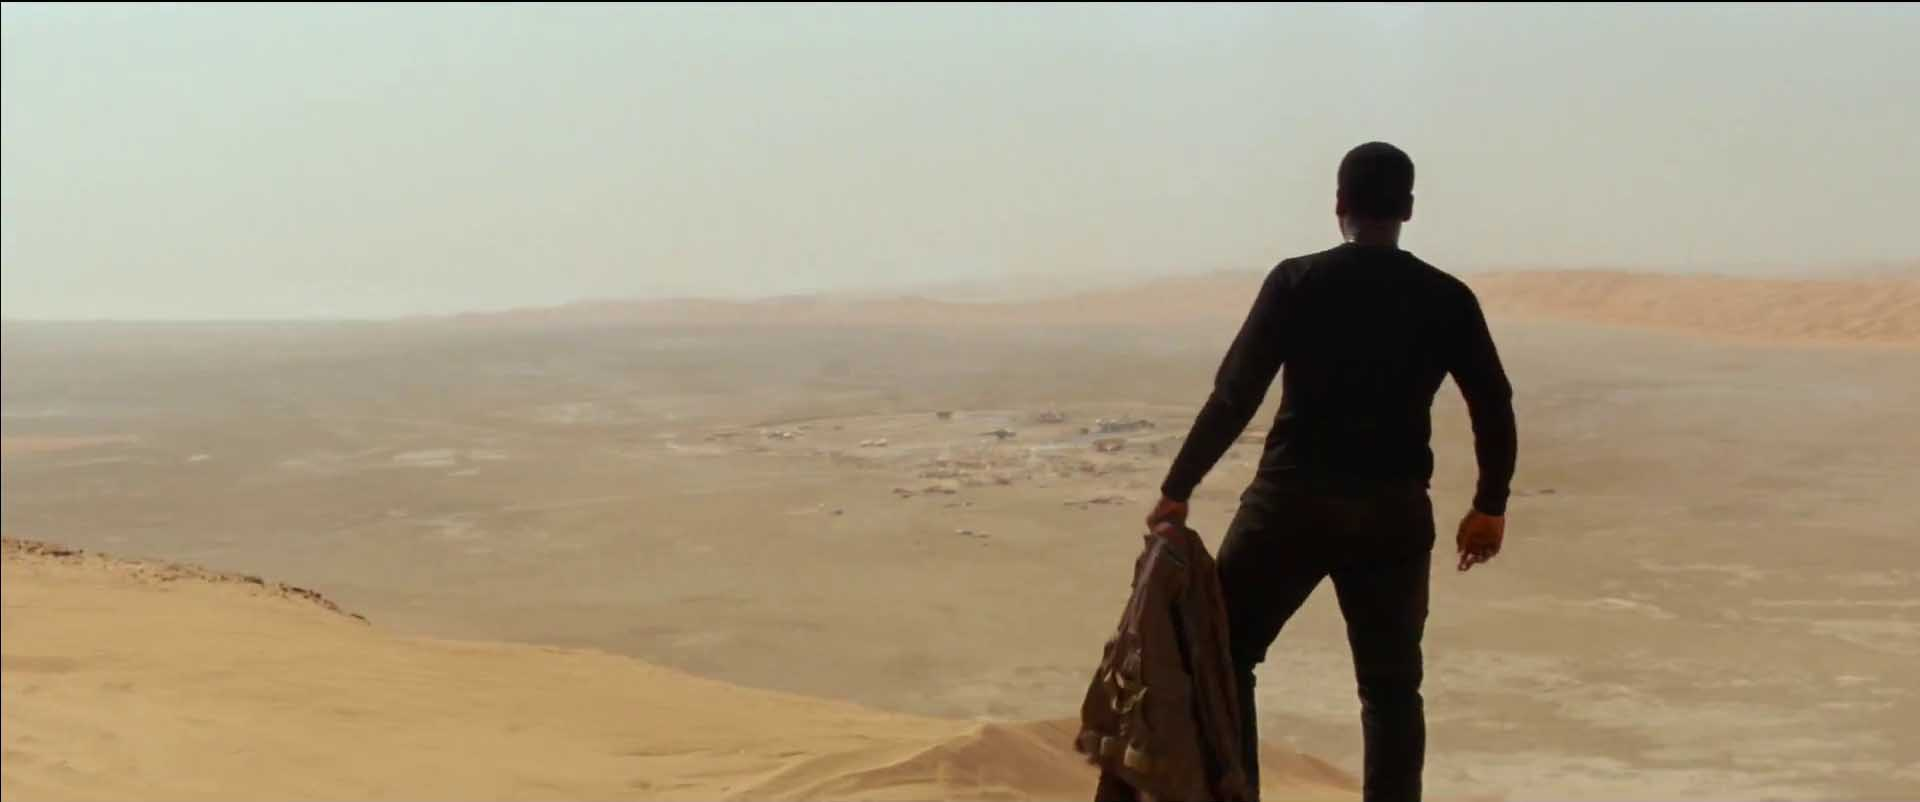 Star Wars The Force Awakens Finn on Jakku